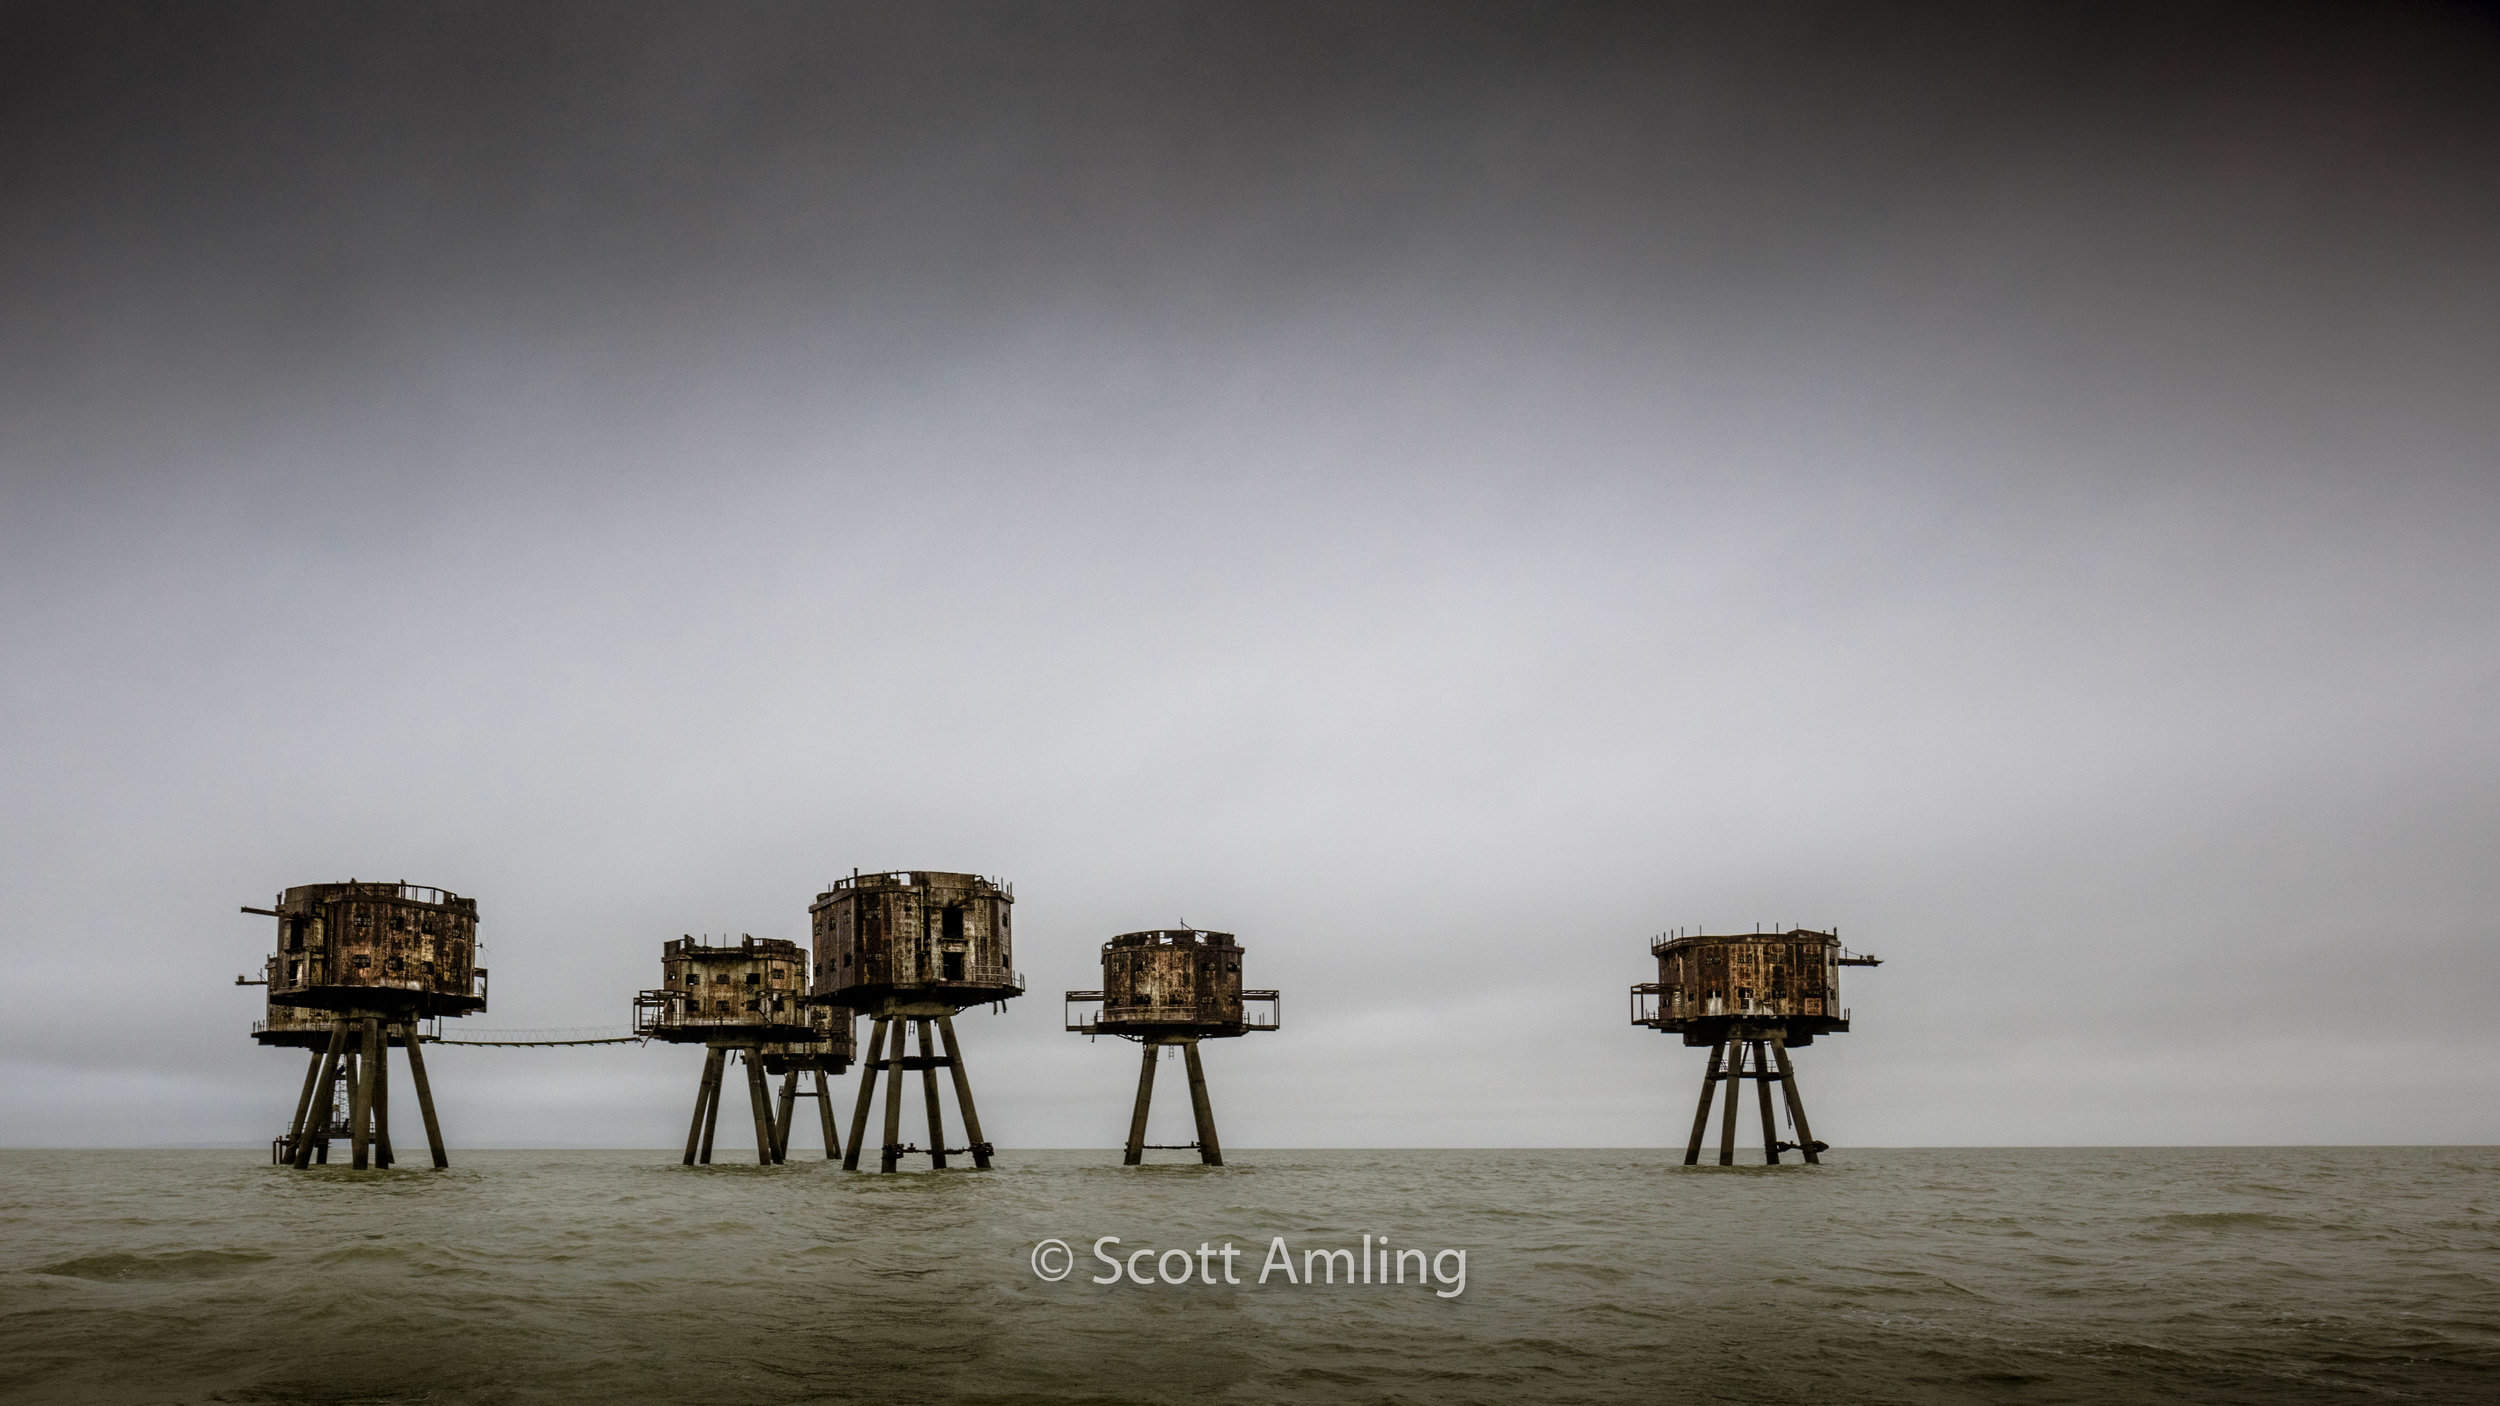 Maunsell Sea Forts, Red Sands, North Sea, England (January, 2018)